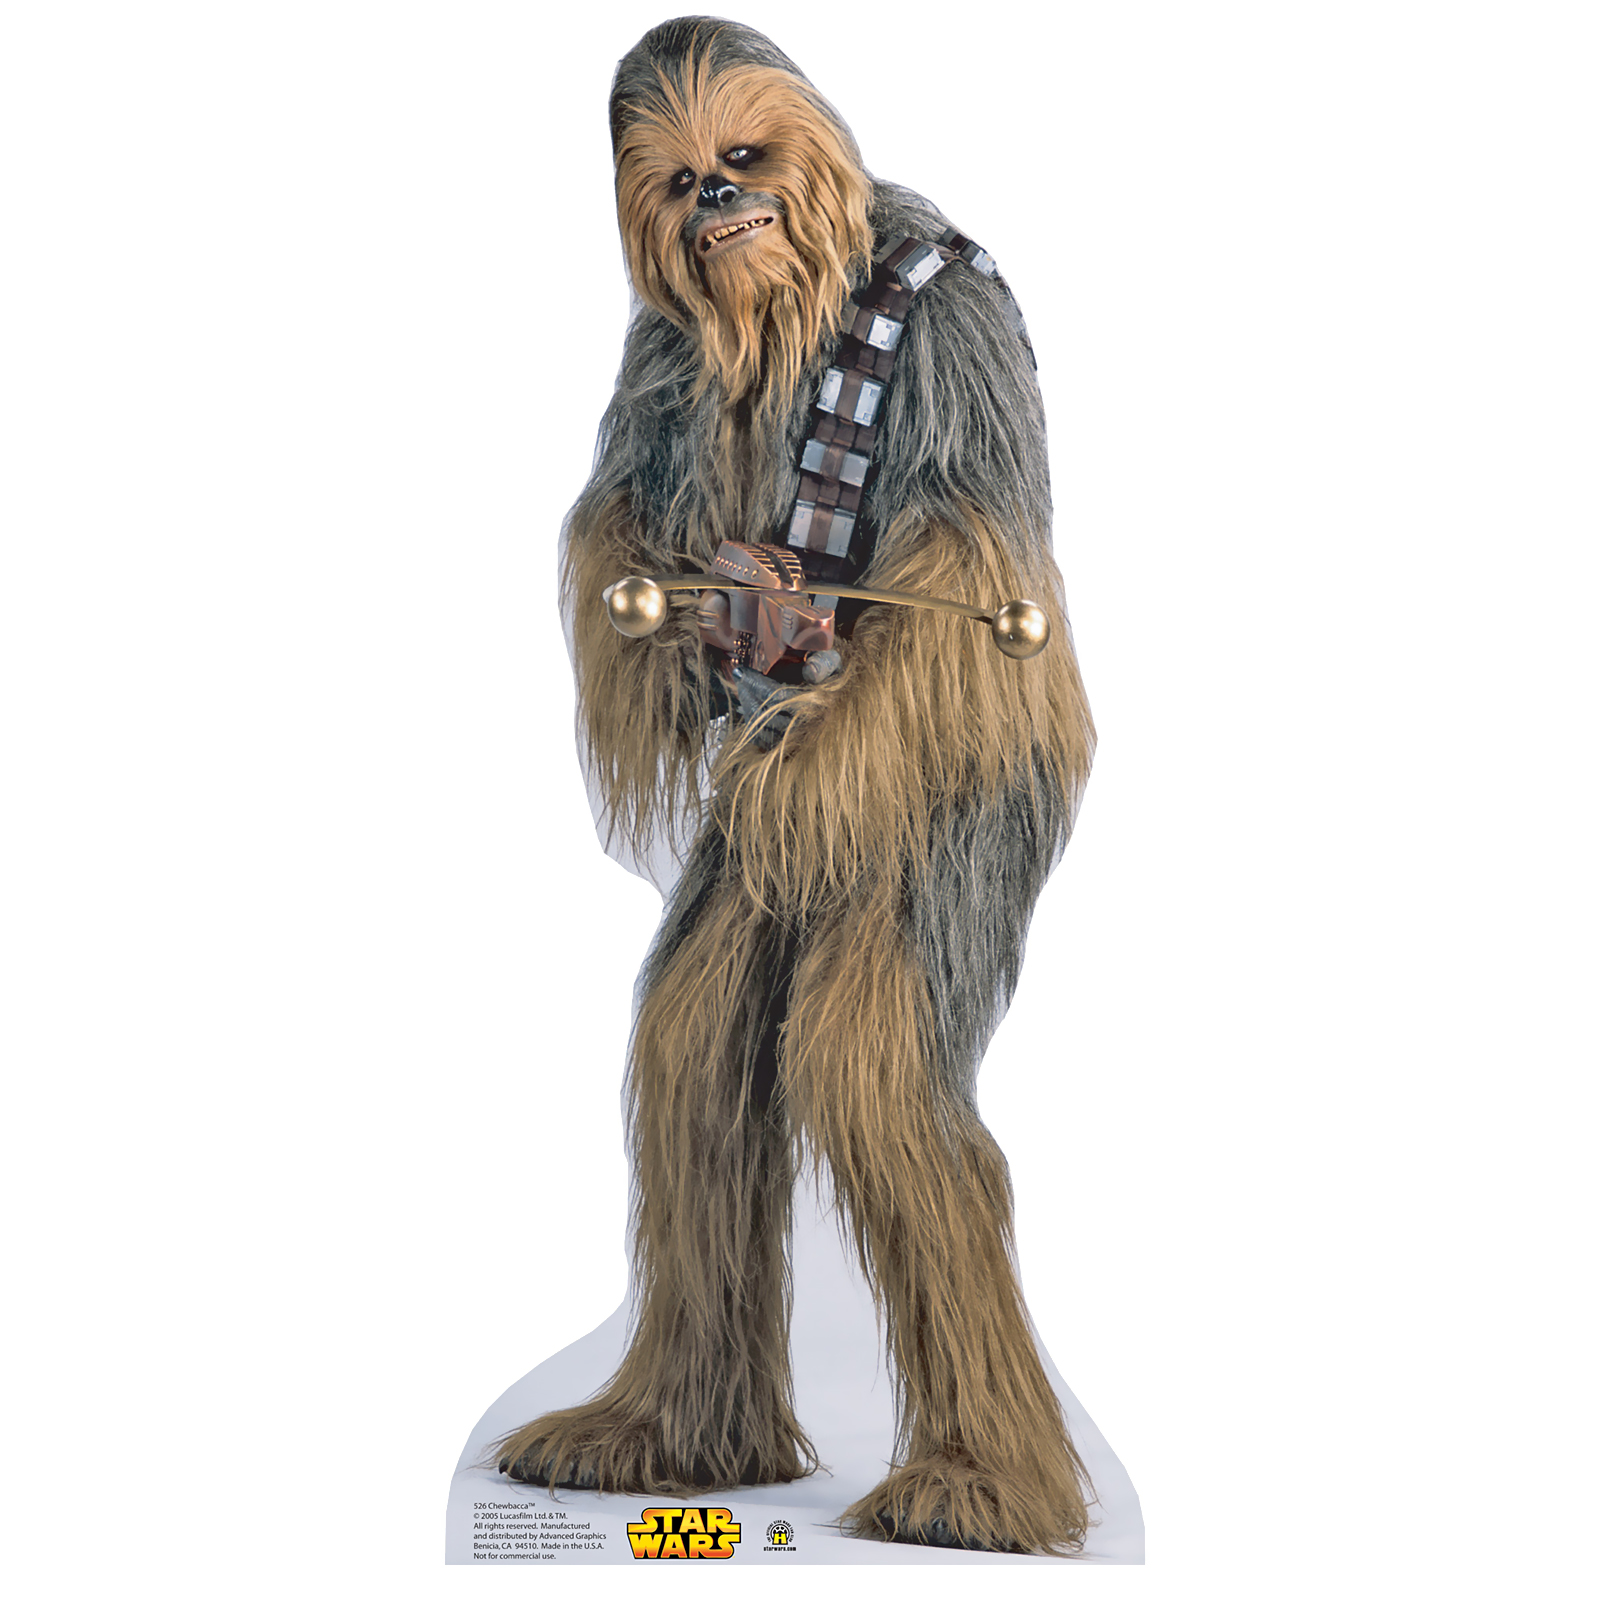 Star Wars Chewbacca Standup